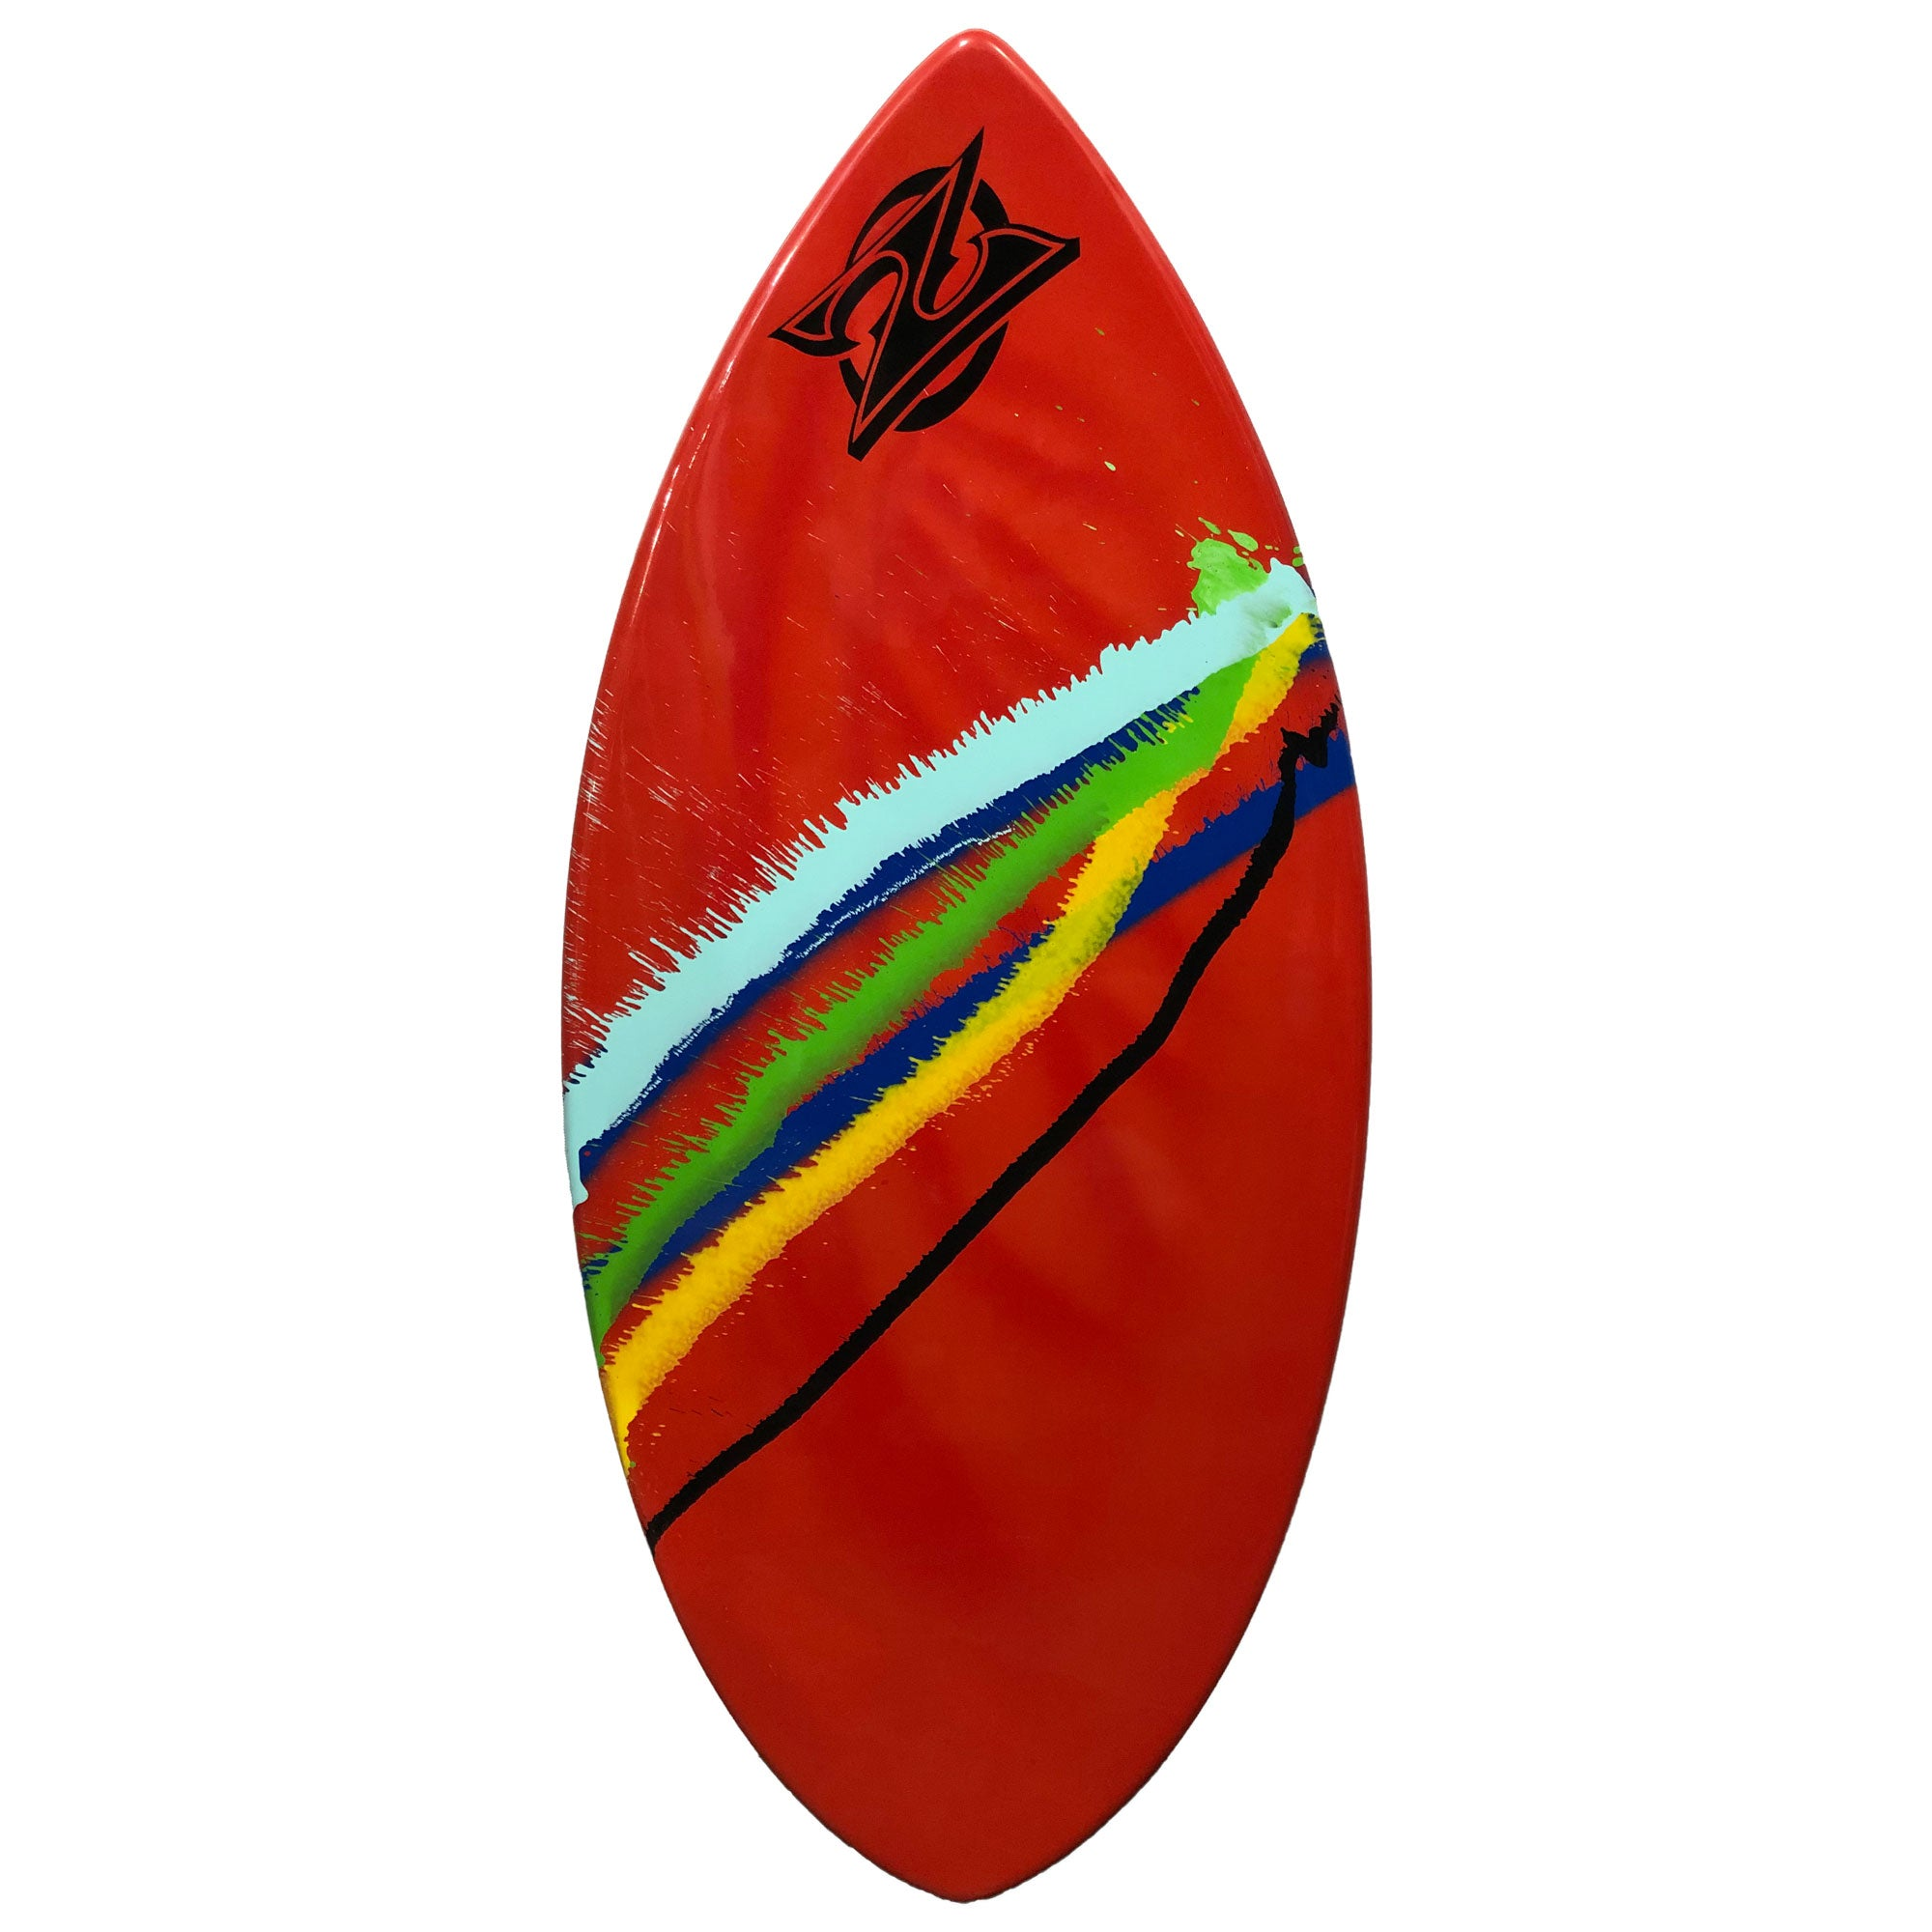 "Zap Wedge 45"" Skimboard - Red w/ Multi Stripes"